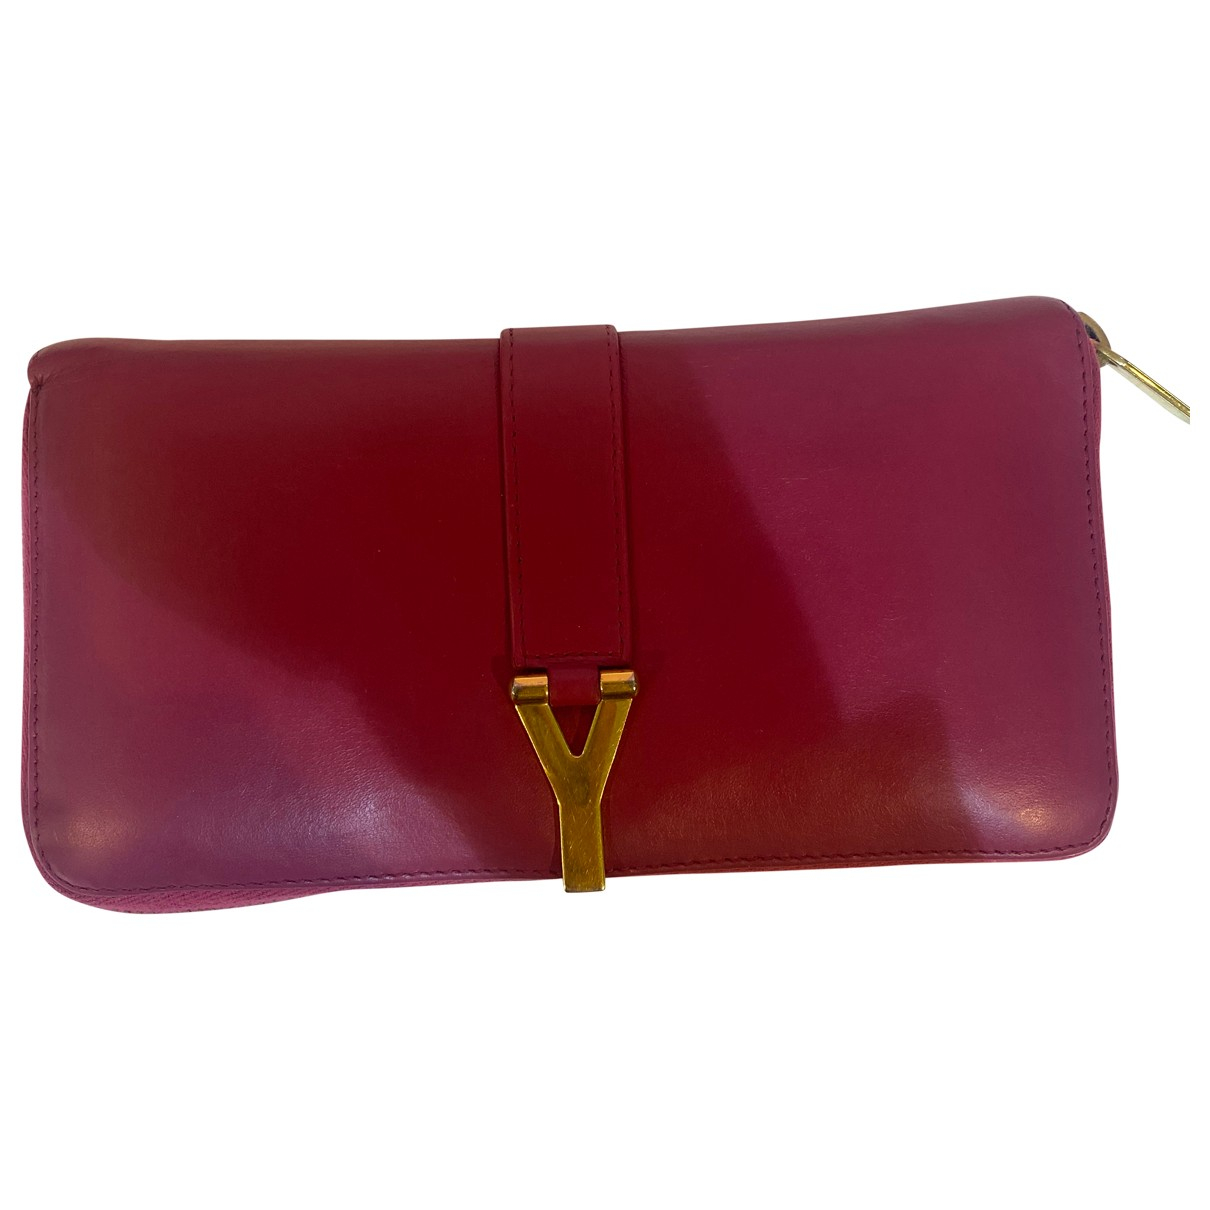 Saint Laurent Chyc Pink Leather wallet for Women \N